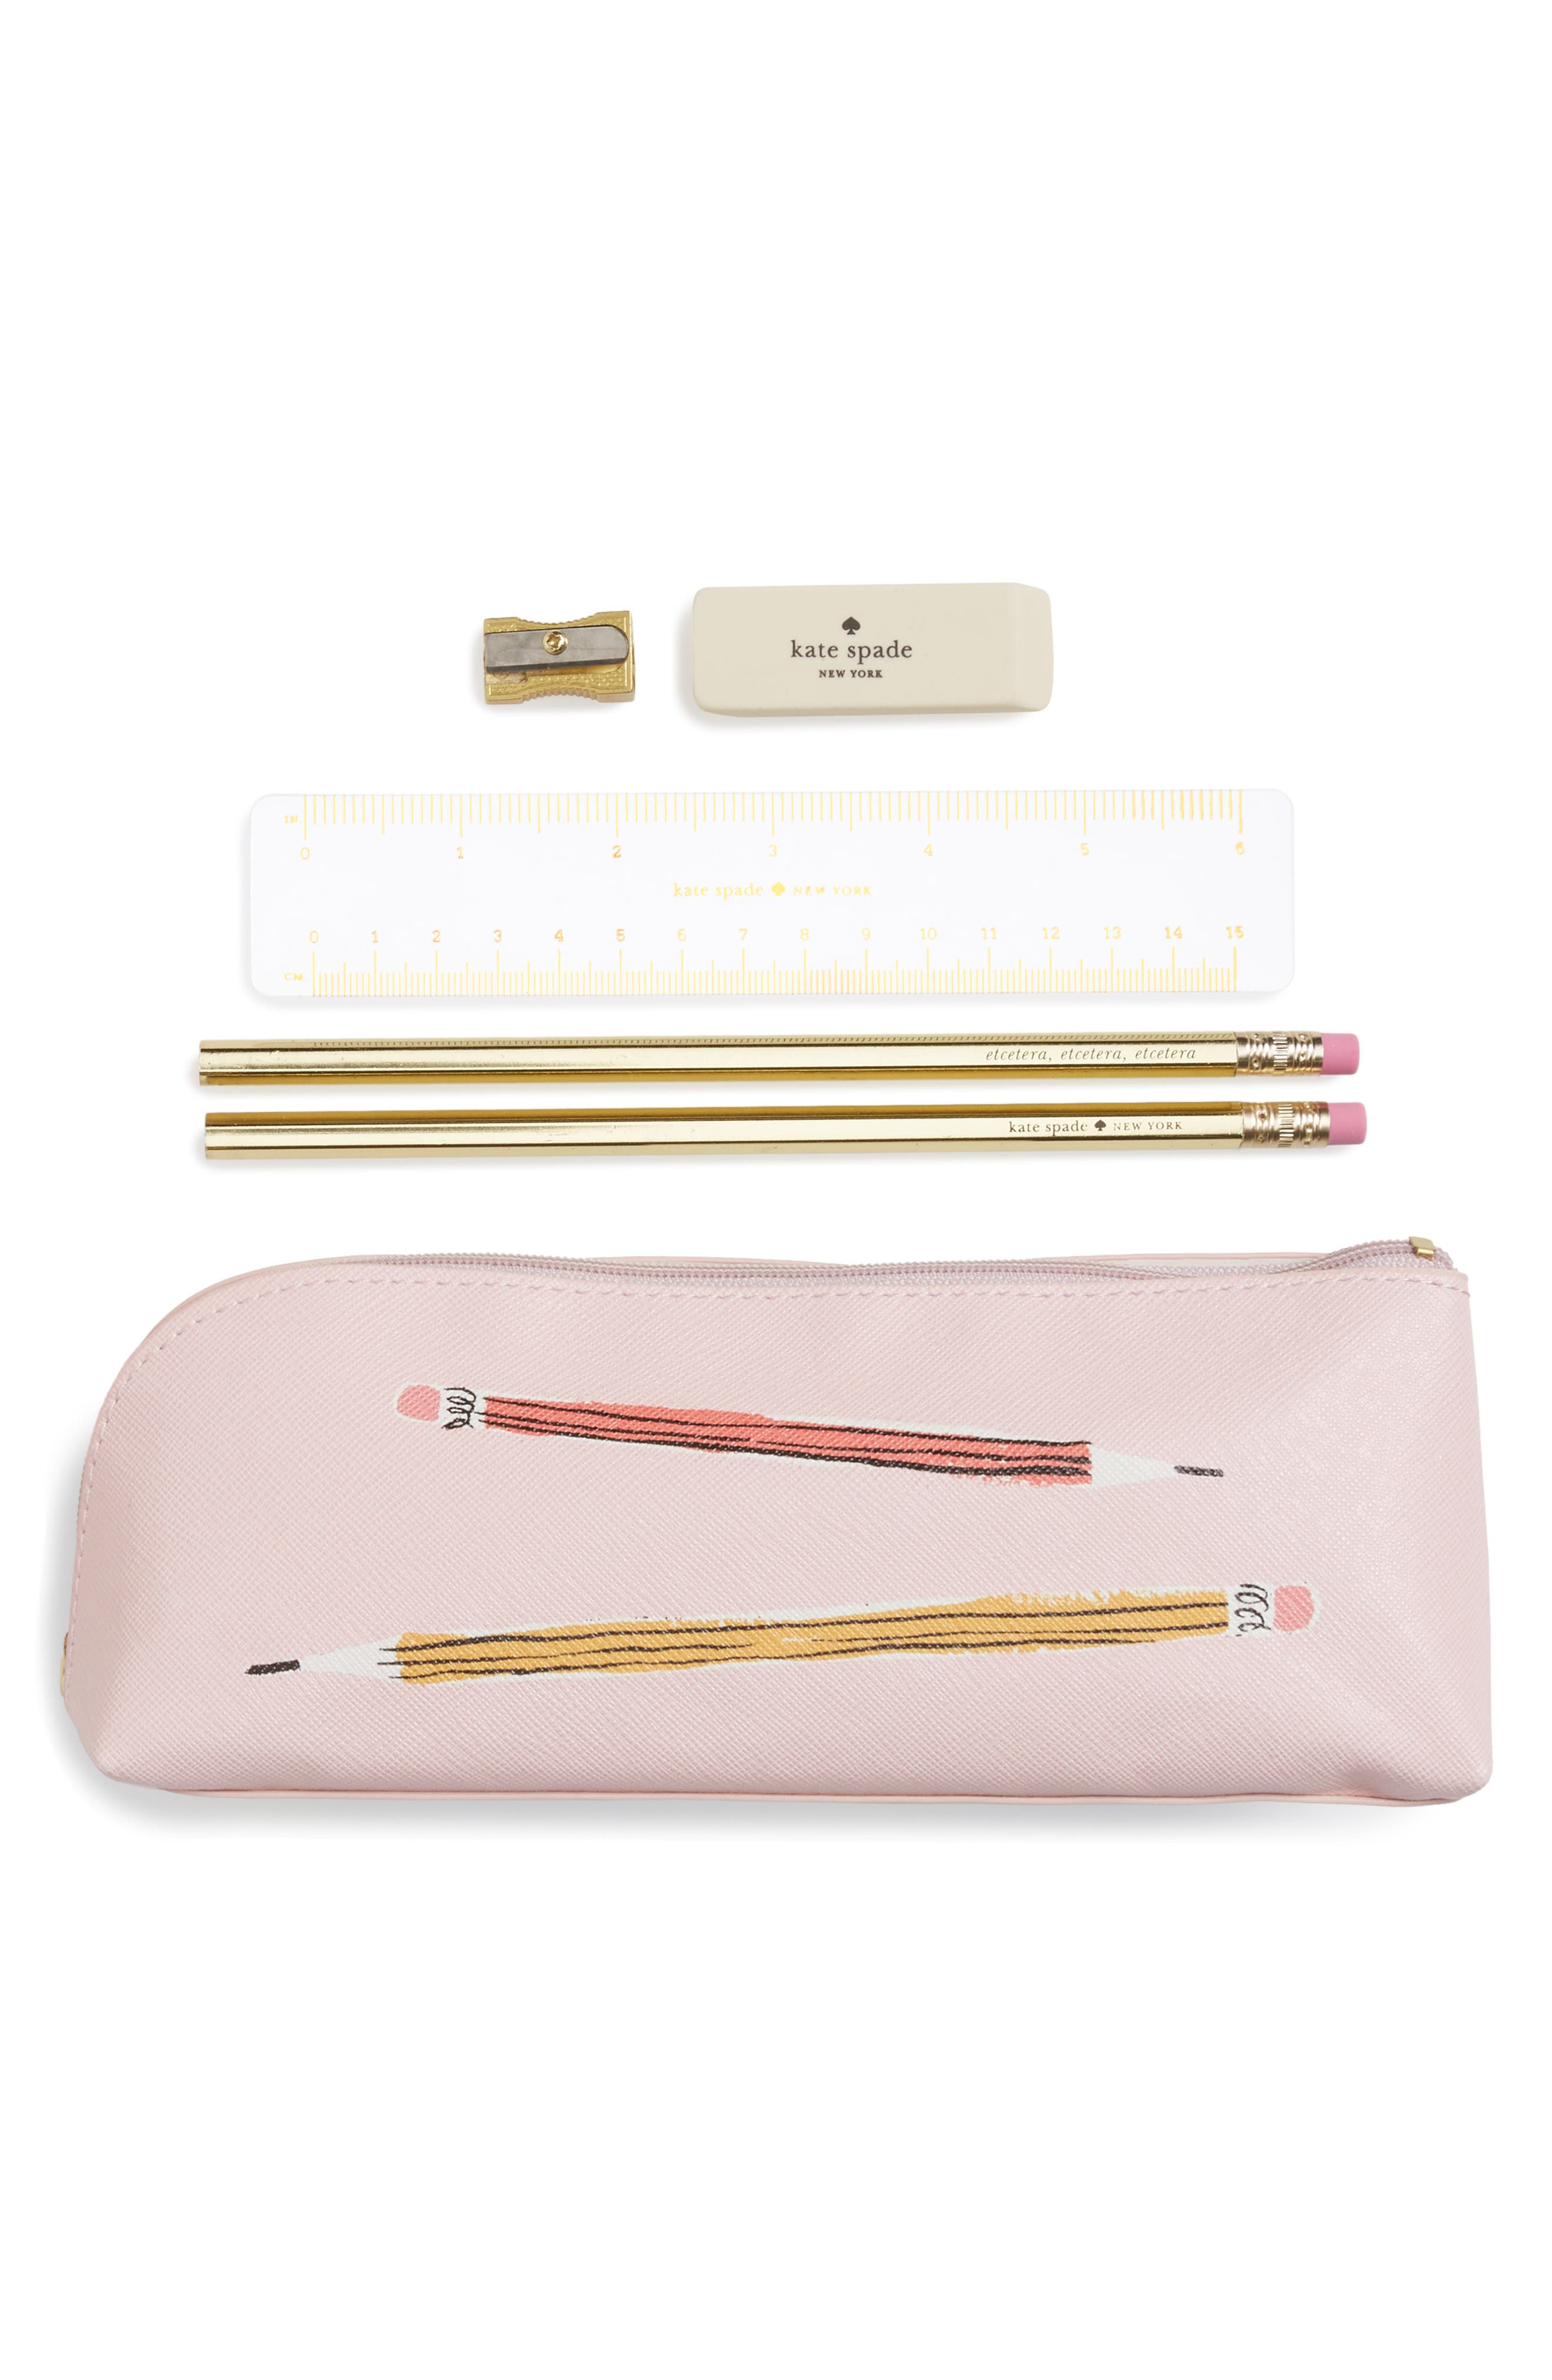 kate spade new york sketch pencil case